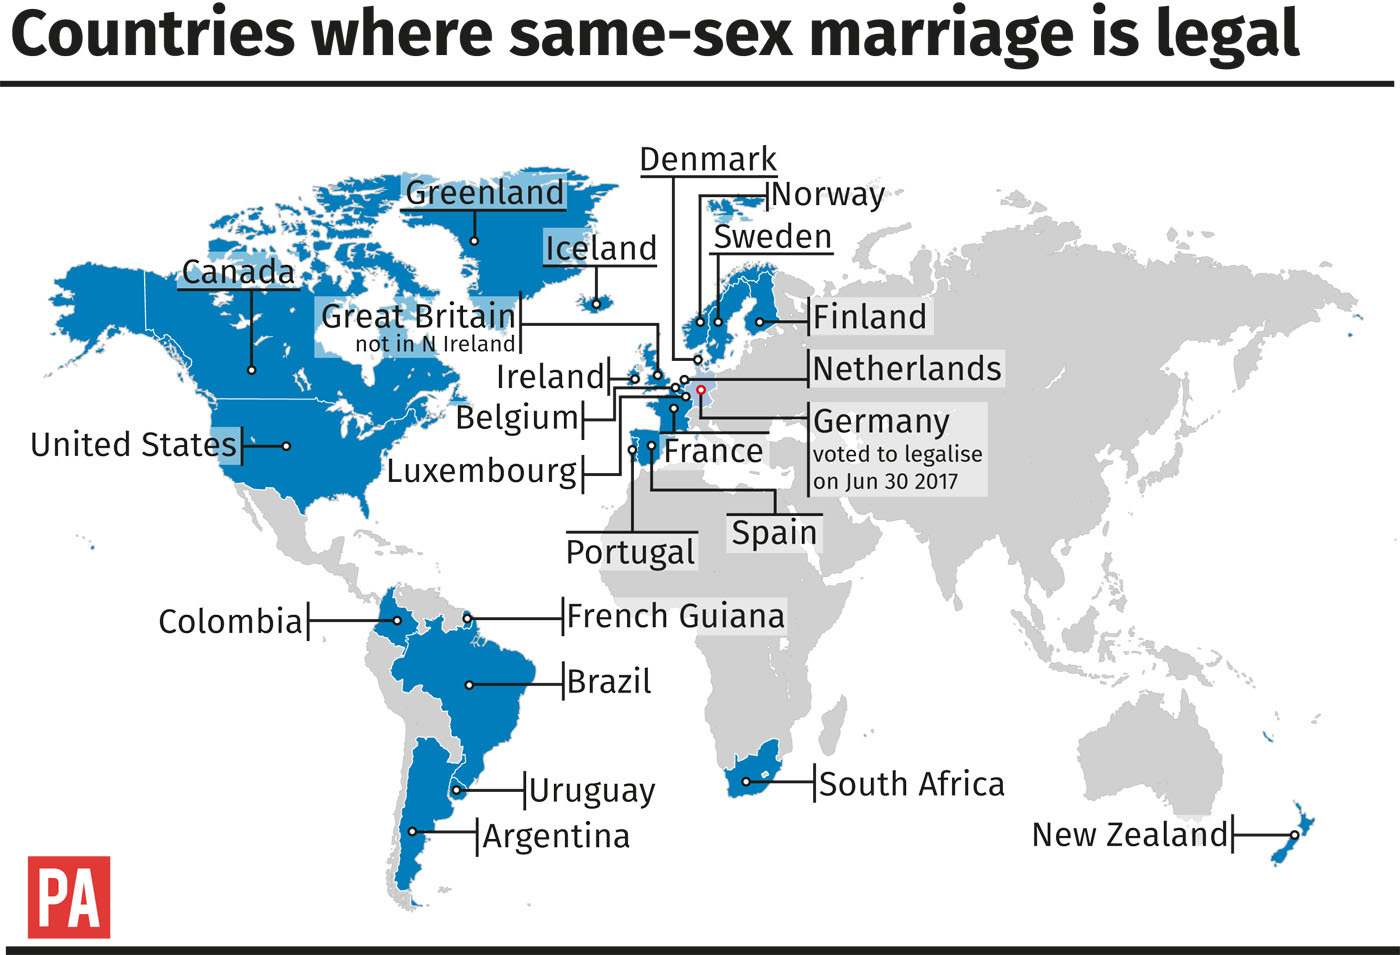 Countries that recognize same-sex marriage